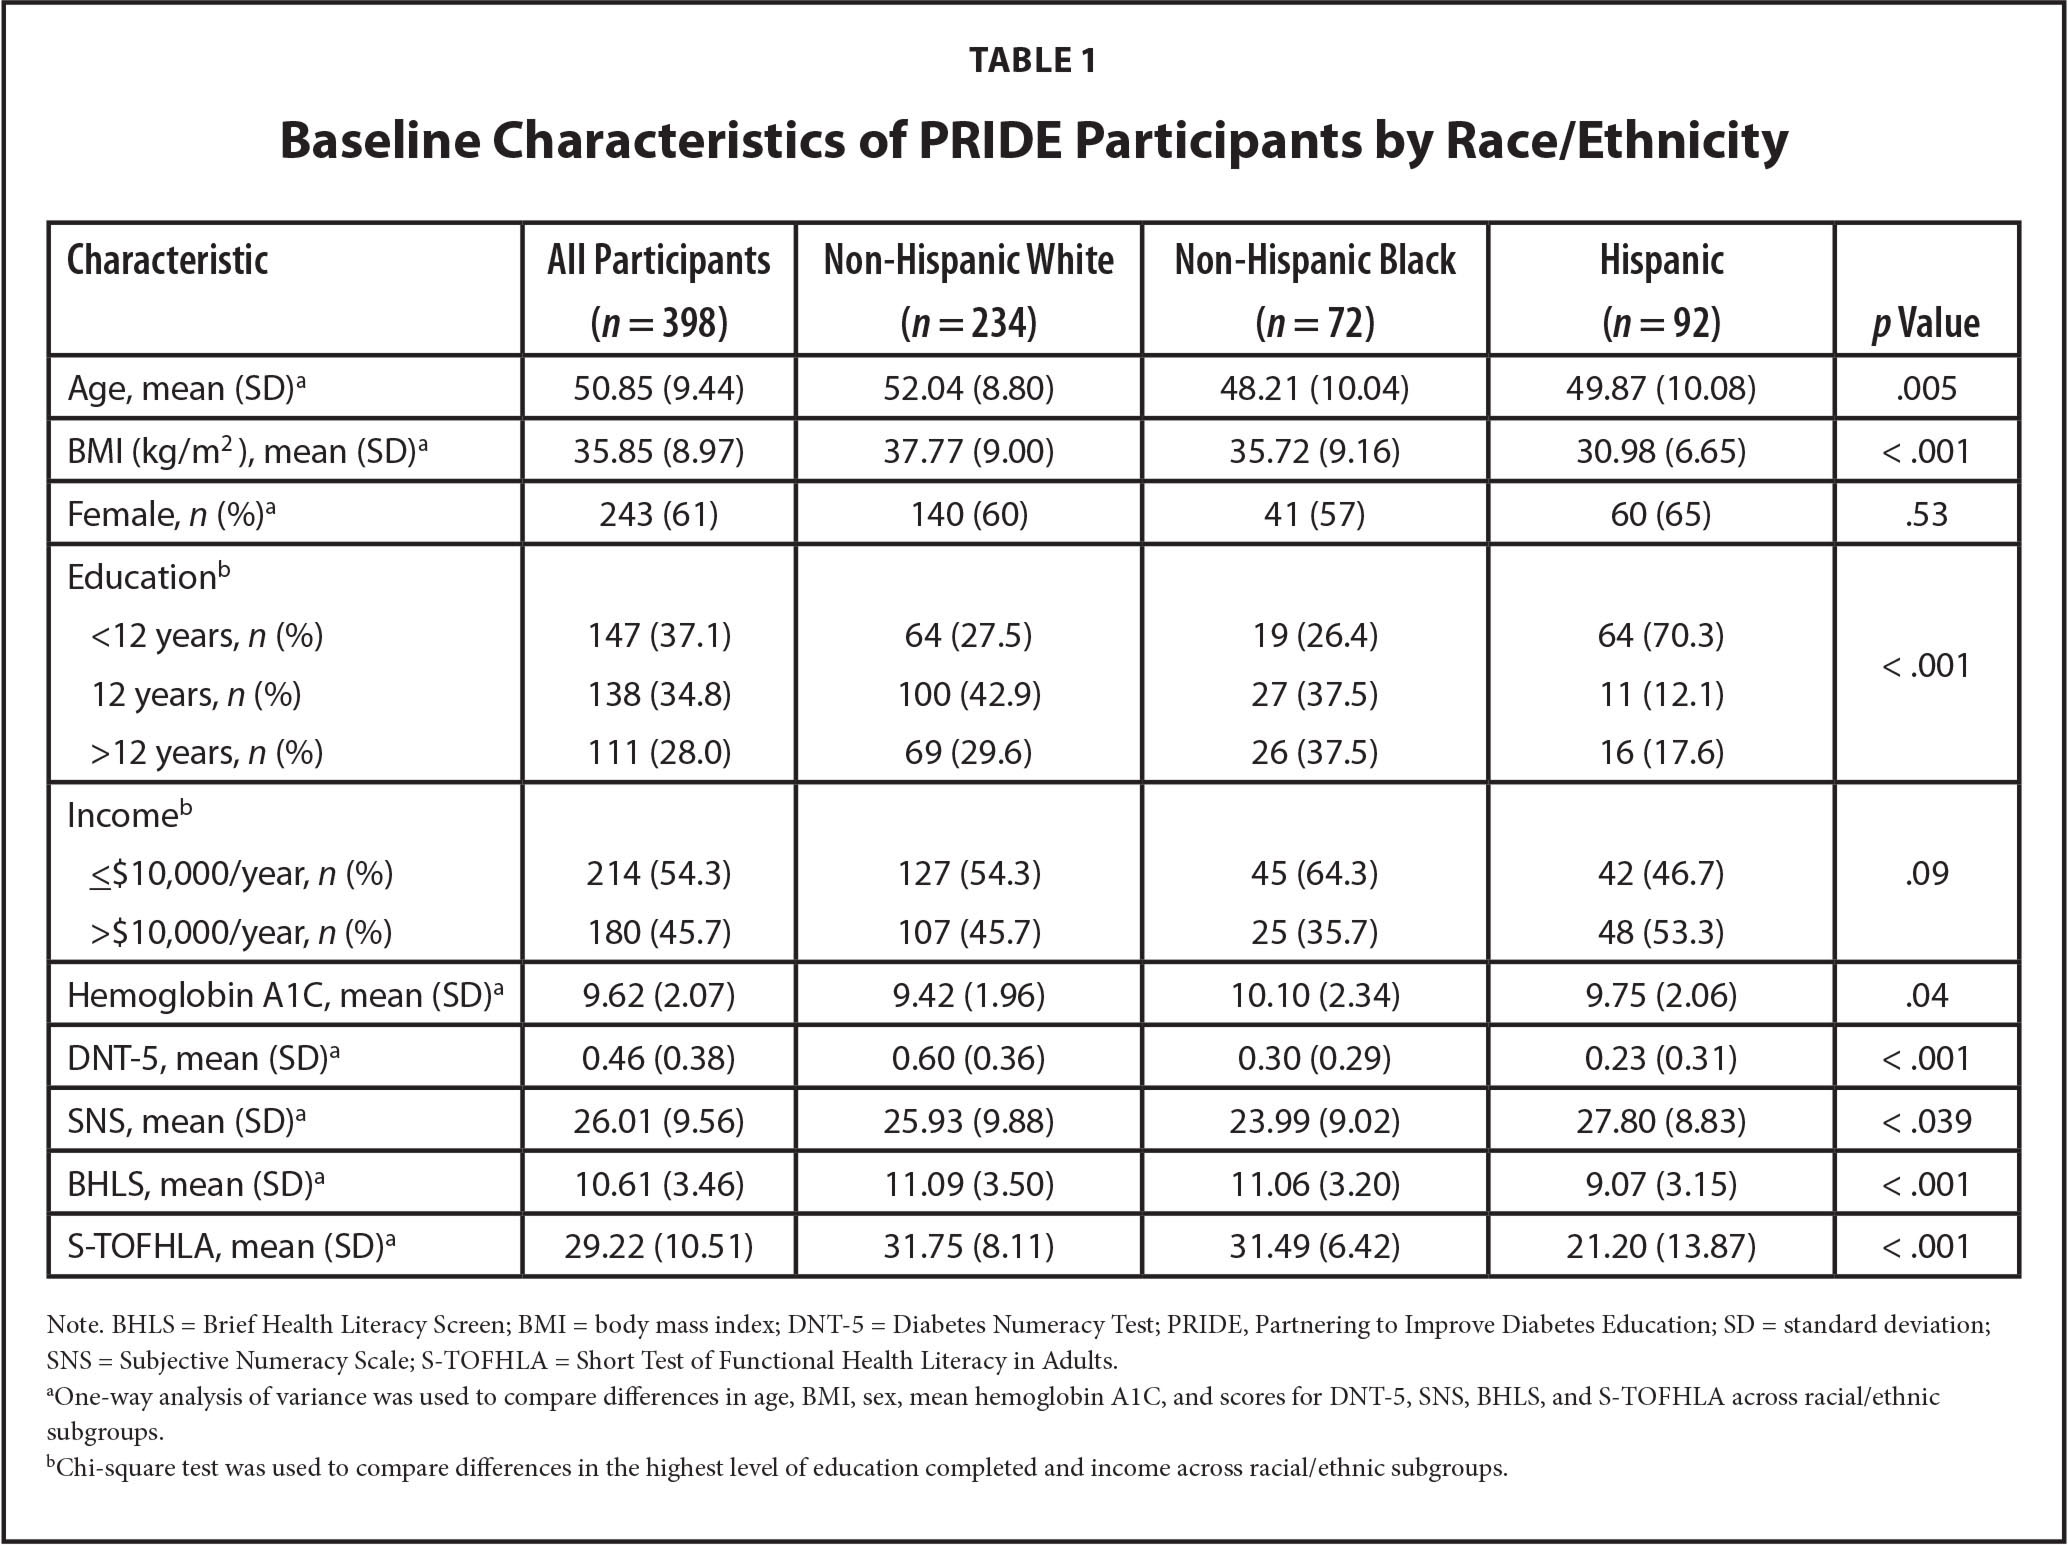 Baseline Characteristics of PRIDE Participants by Race/Ethnicity